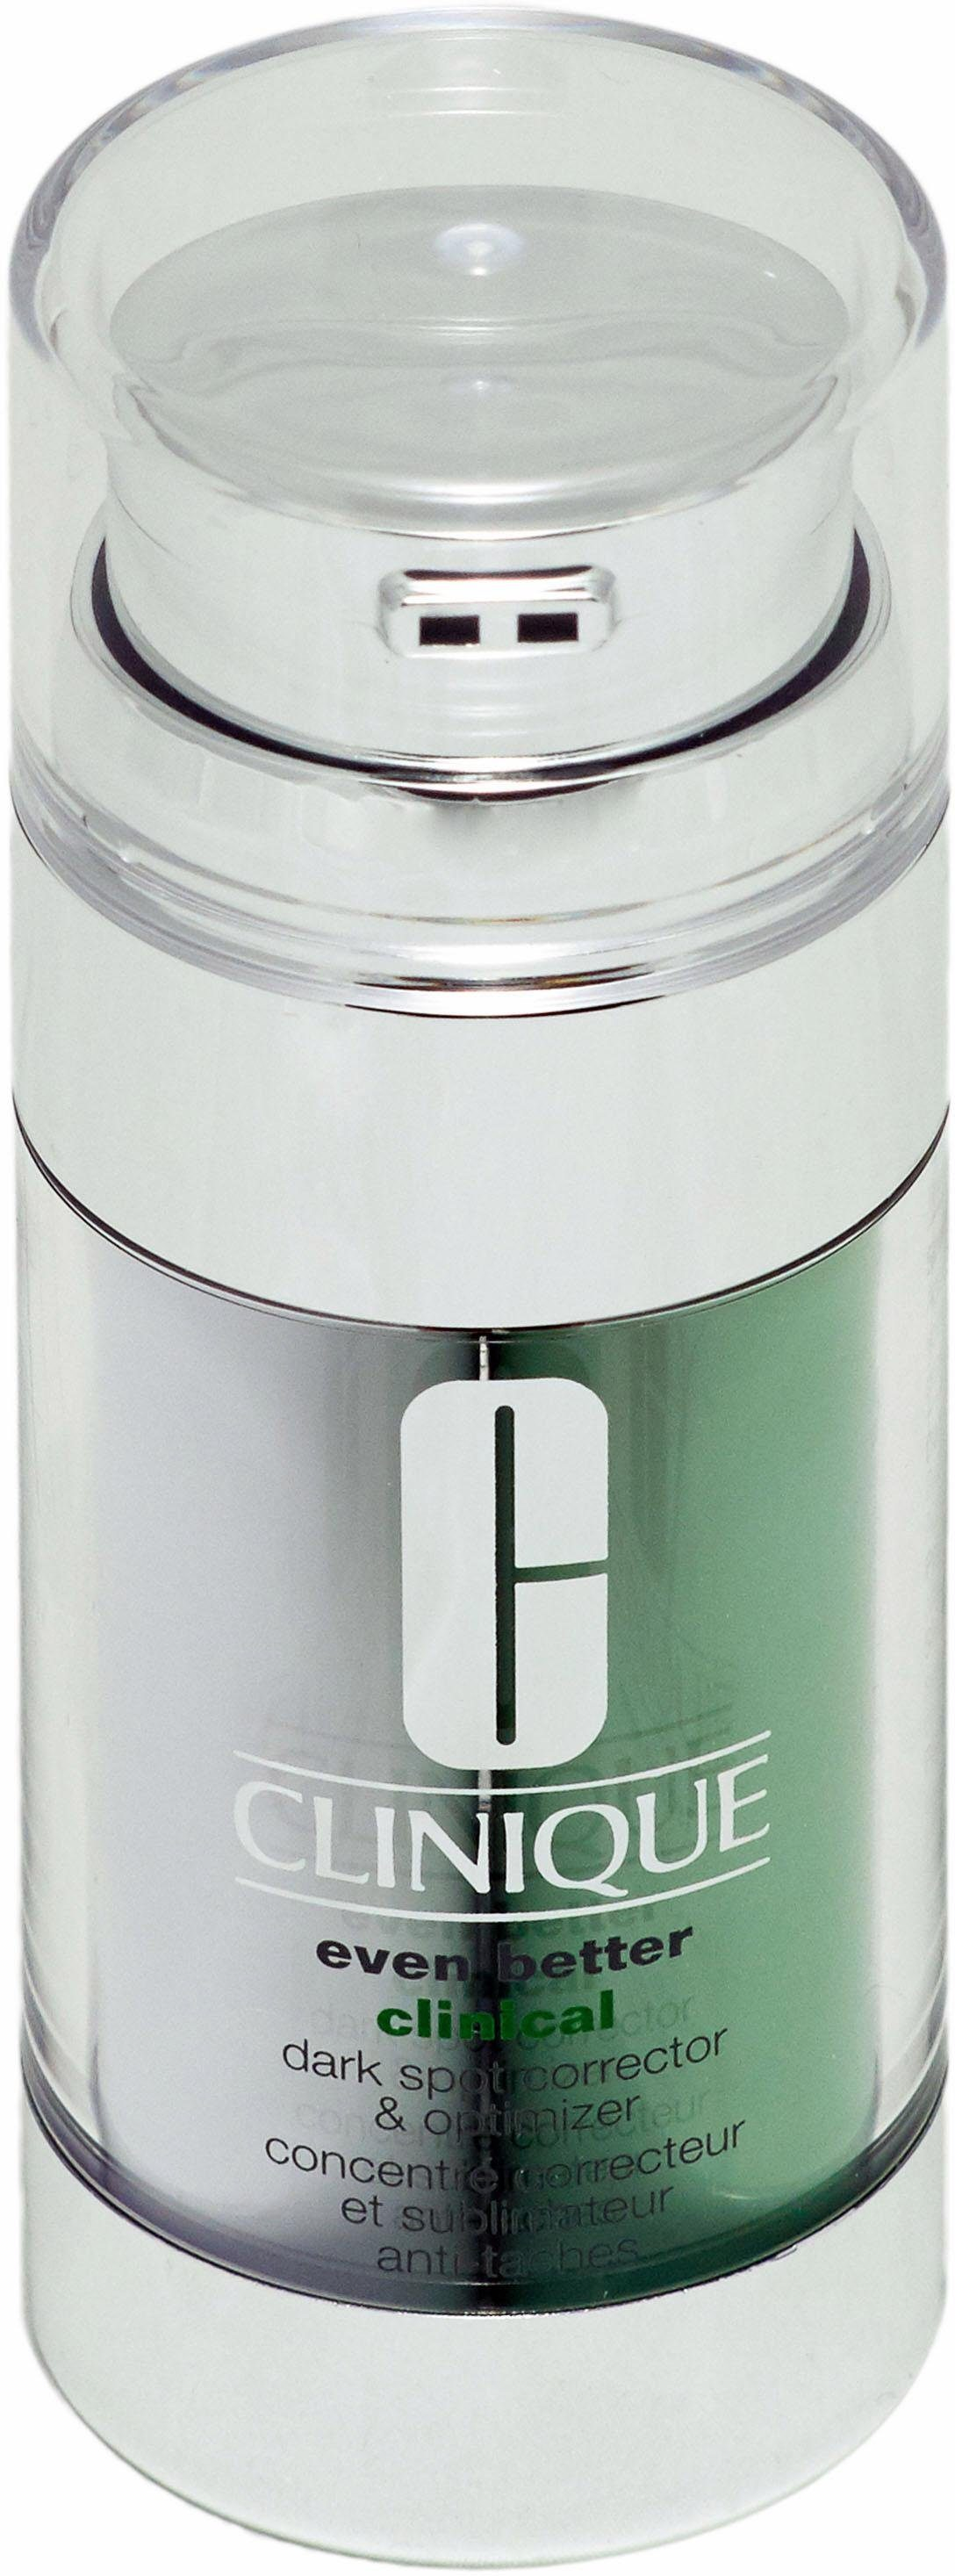 Clinique »Even Better Clinical Dark Spot Corrector & Optimizer«, Serum